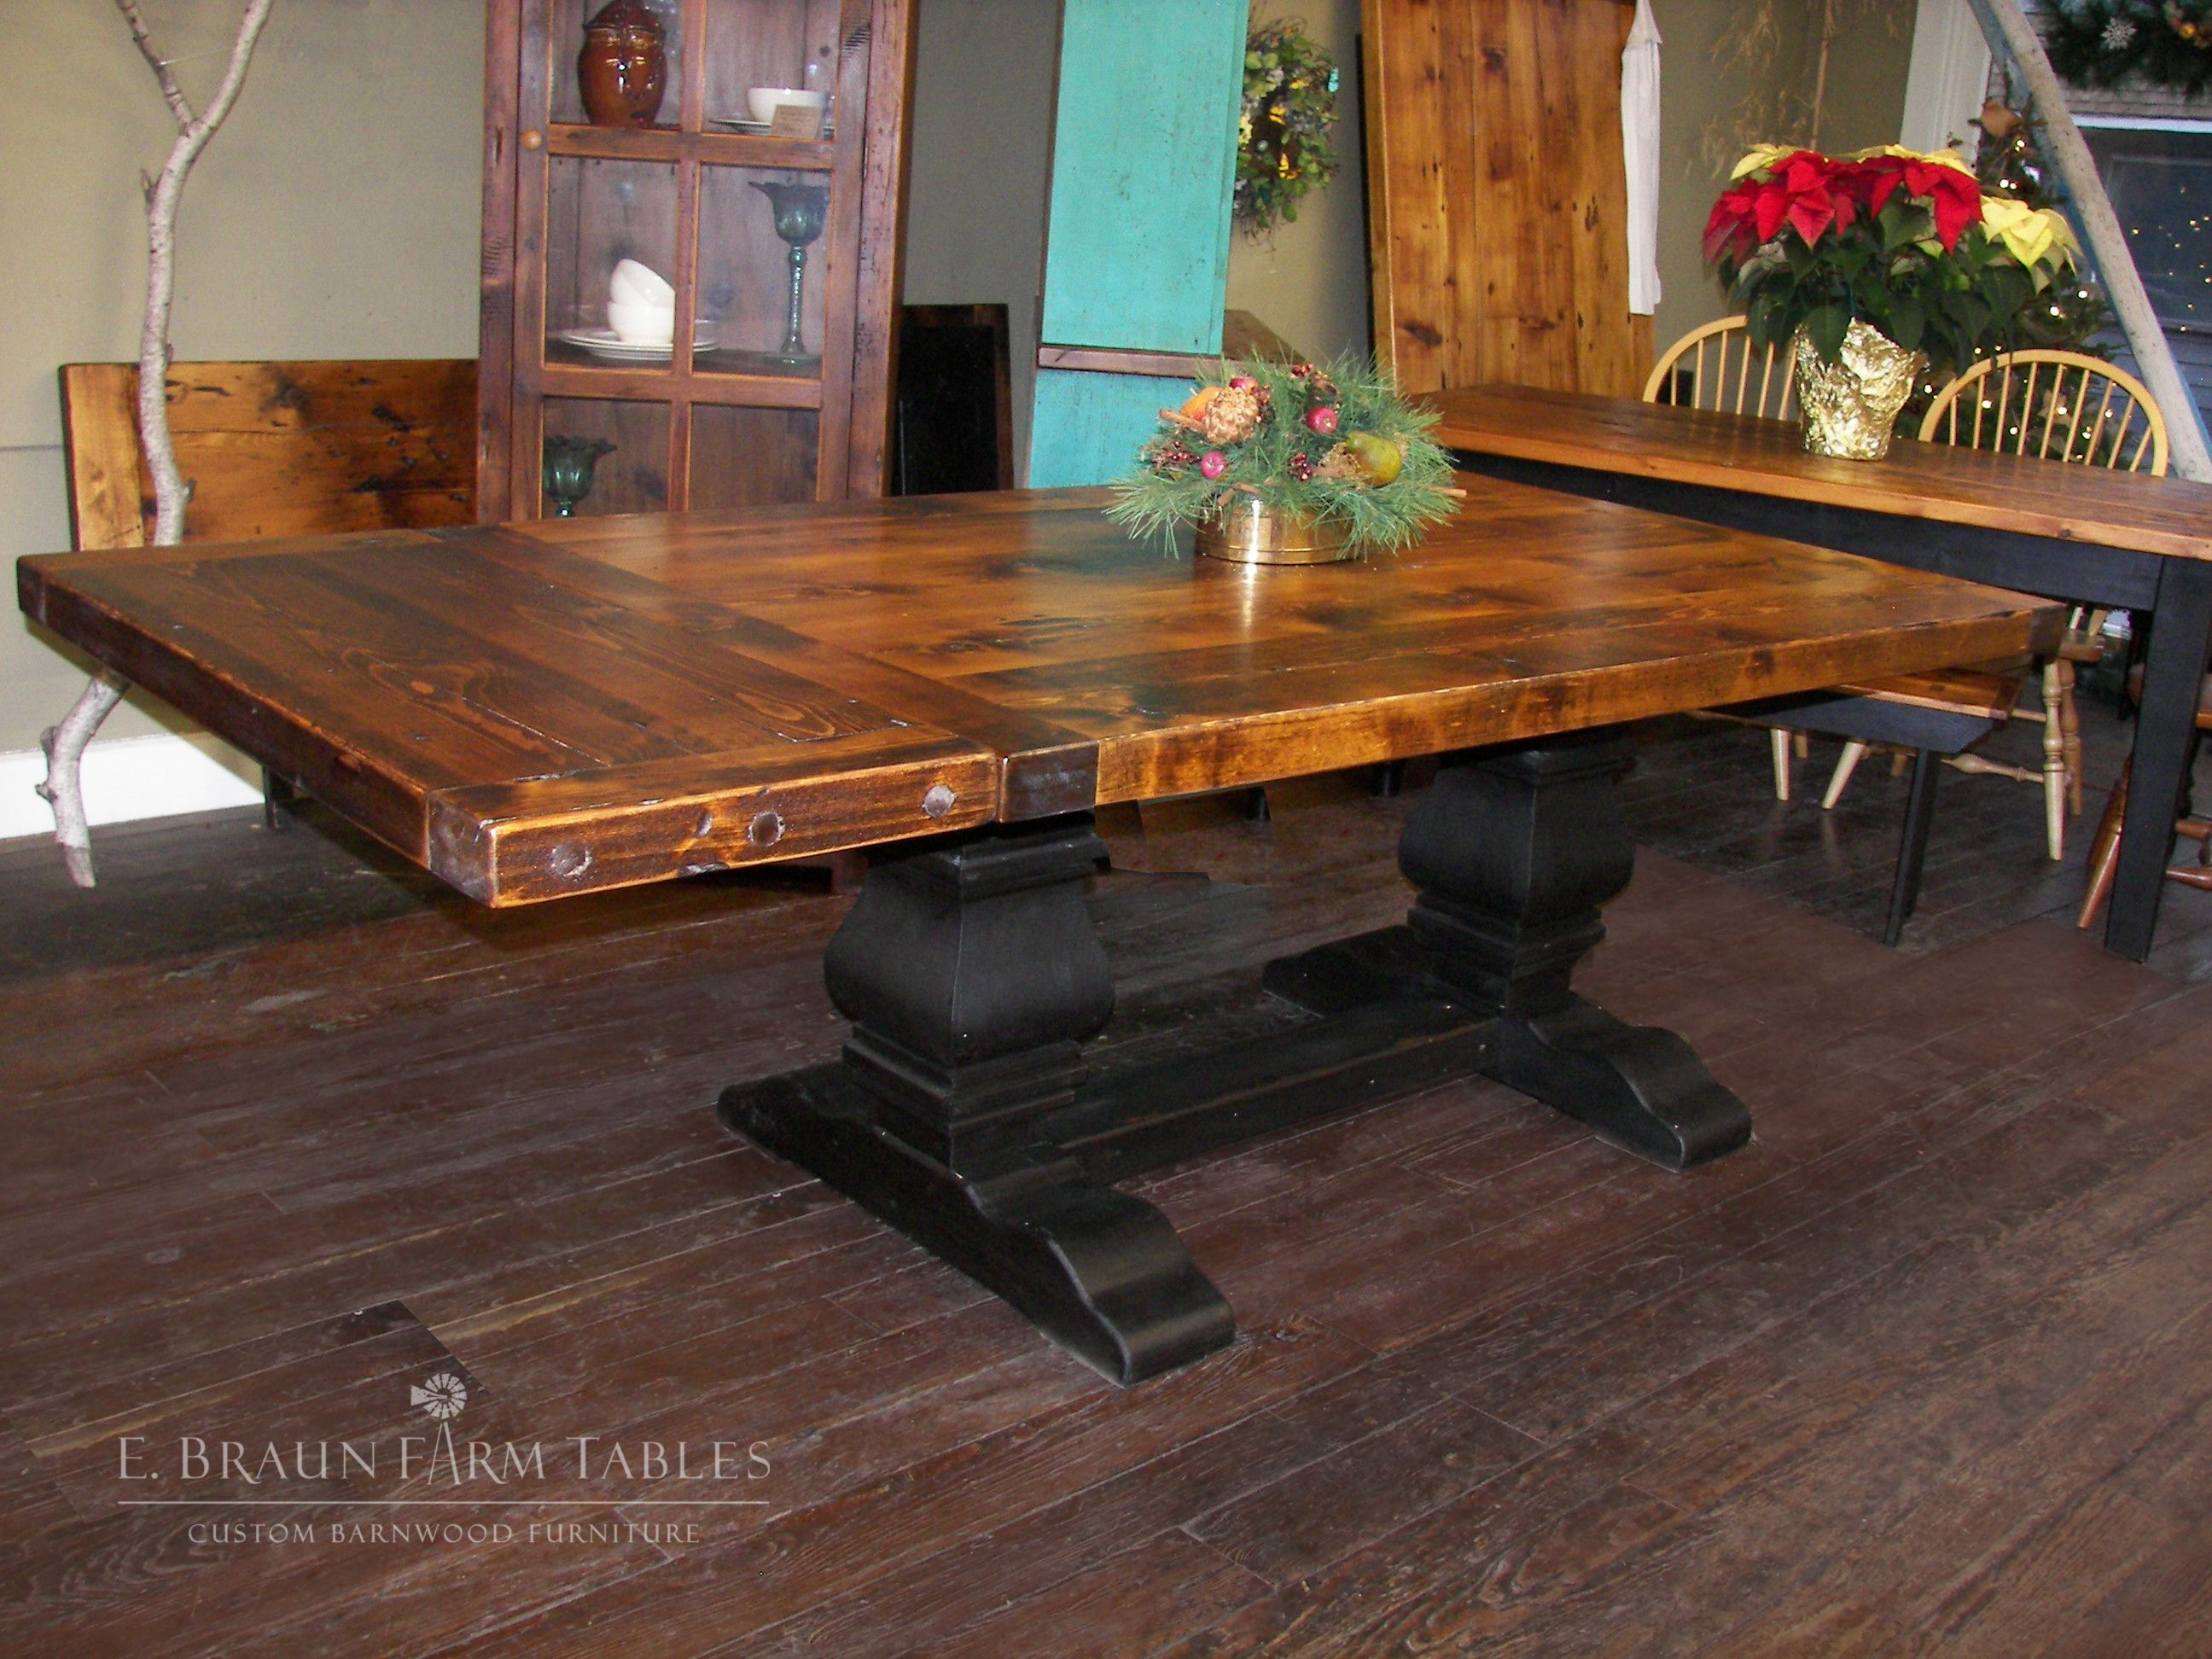 Tables rustic solid wood trestle pedestal base harvest dining table - This 3 Thick Top Low To Medium Character Spruce Reclaimed Barn Wood Table Has A Black Painted Pear Pedestal Trestle Base And Is Stained In Dark Tudor